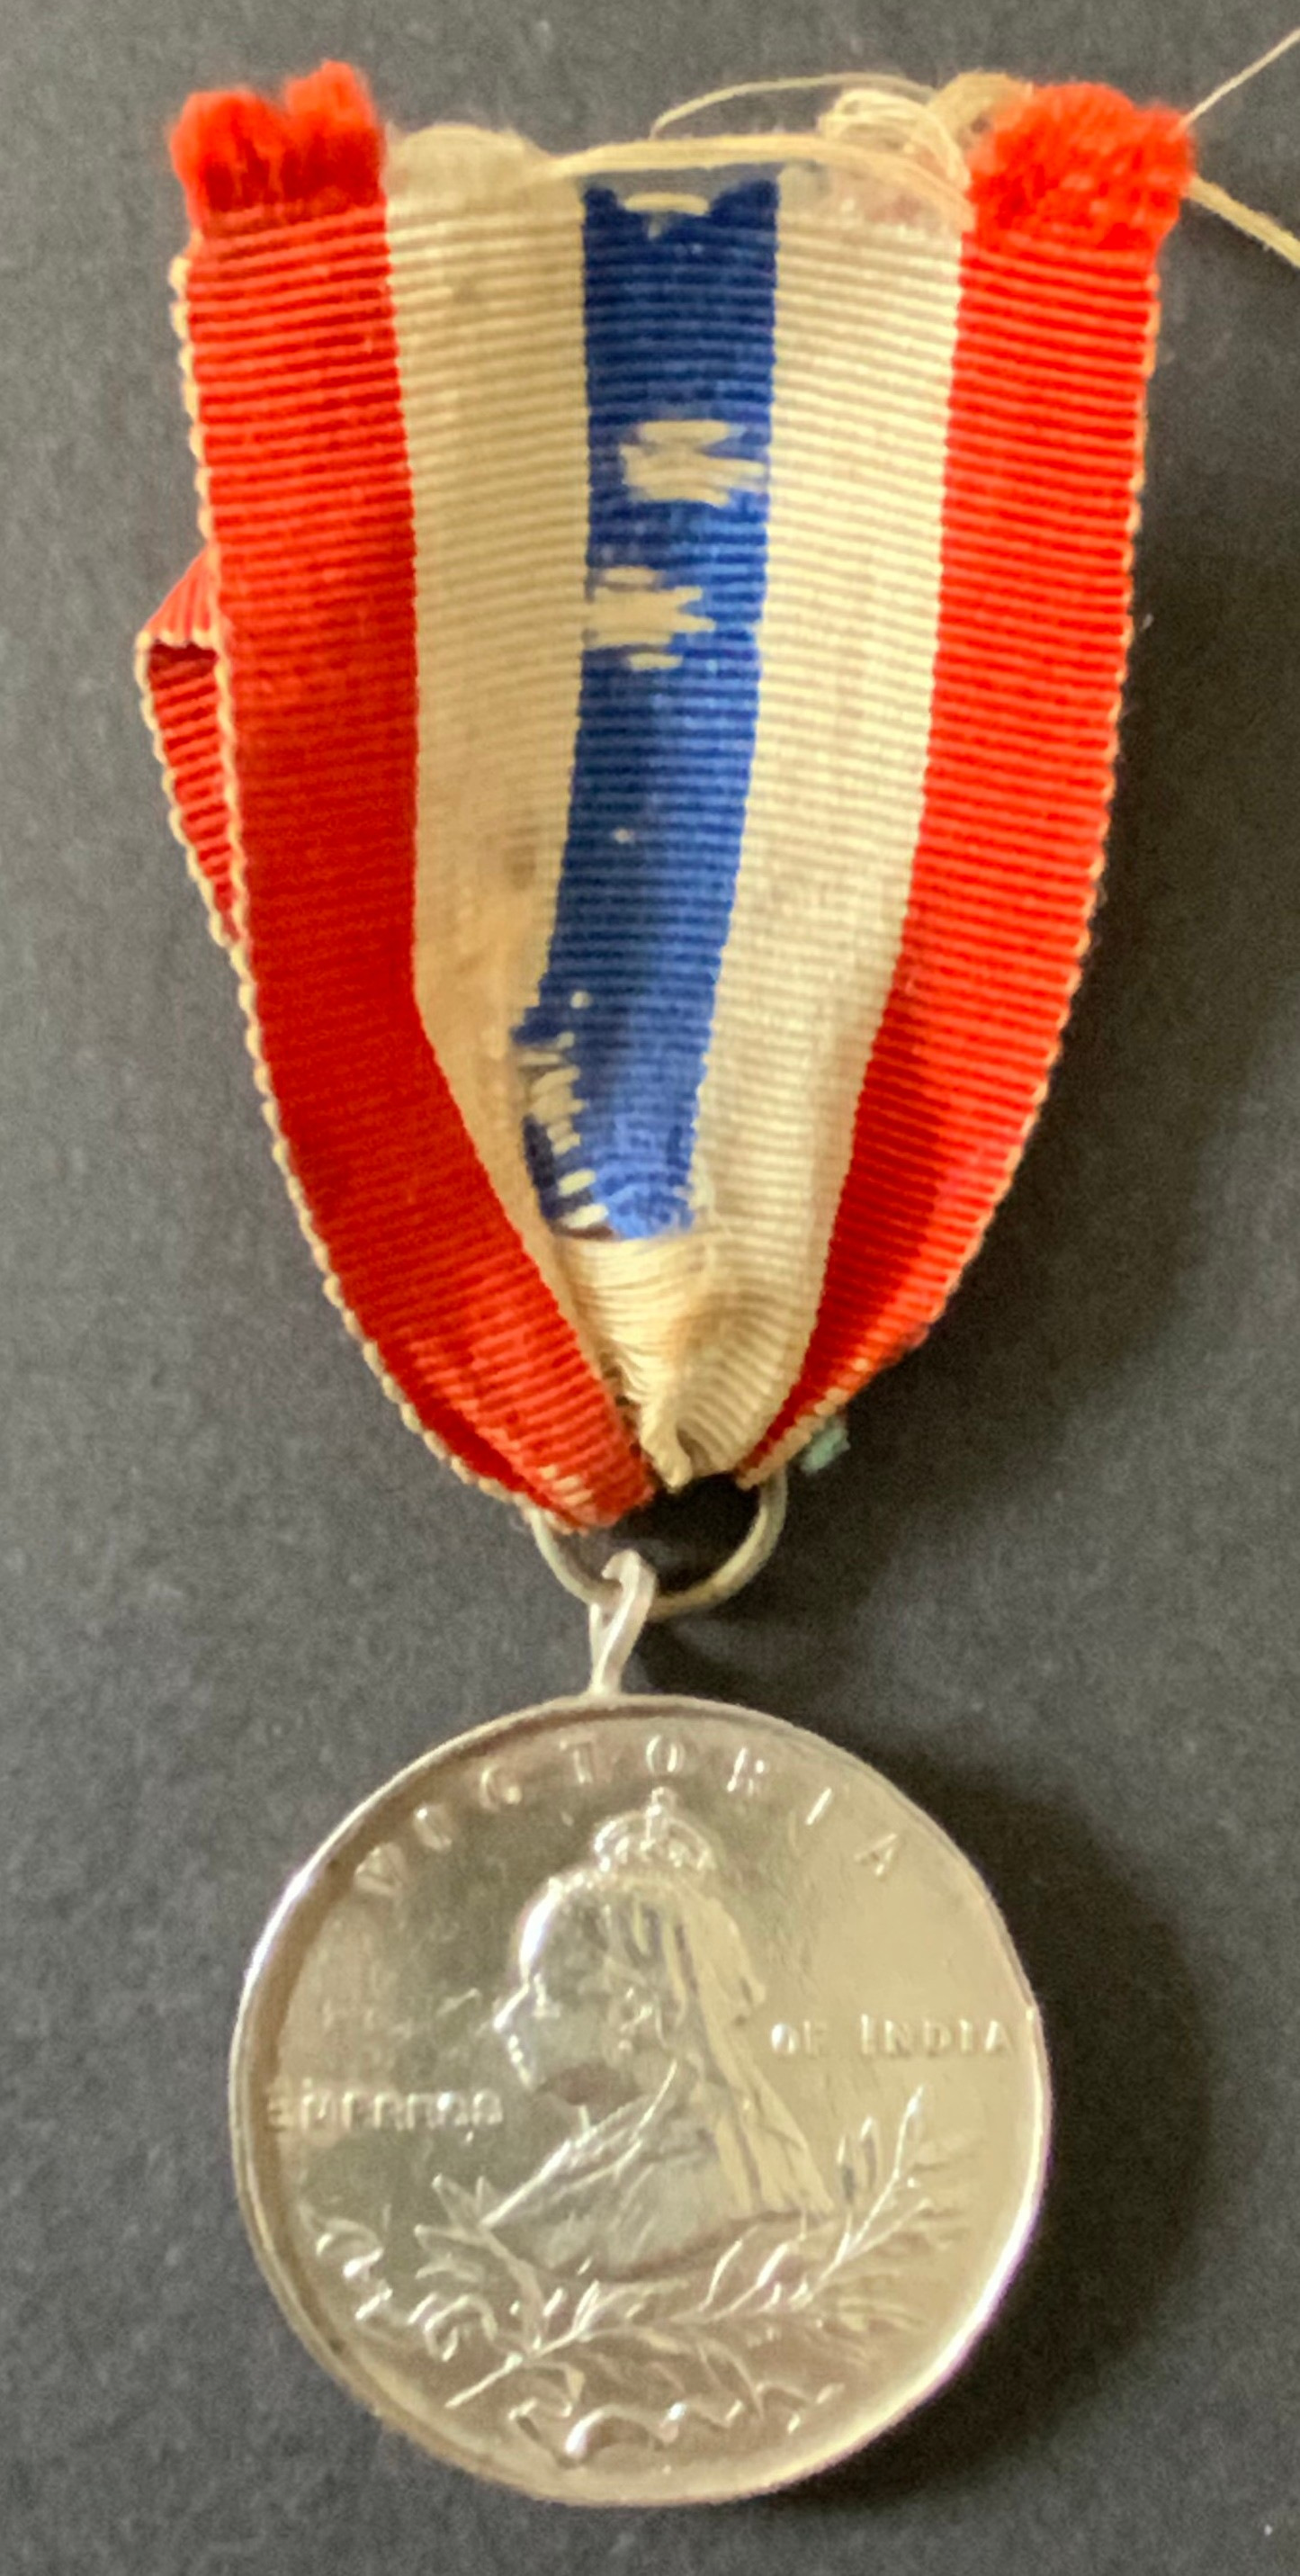 HALLMARKED SILVER MEDAL OF QUEEN VICTORIA EMPRESS OF INDIA (1837-1901)